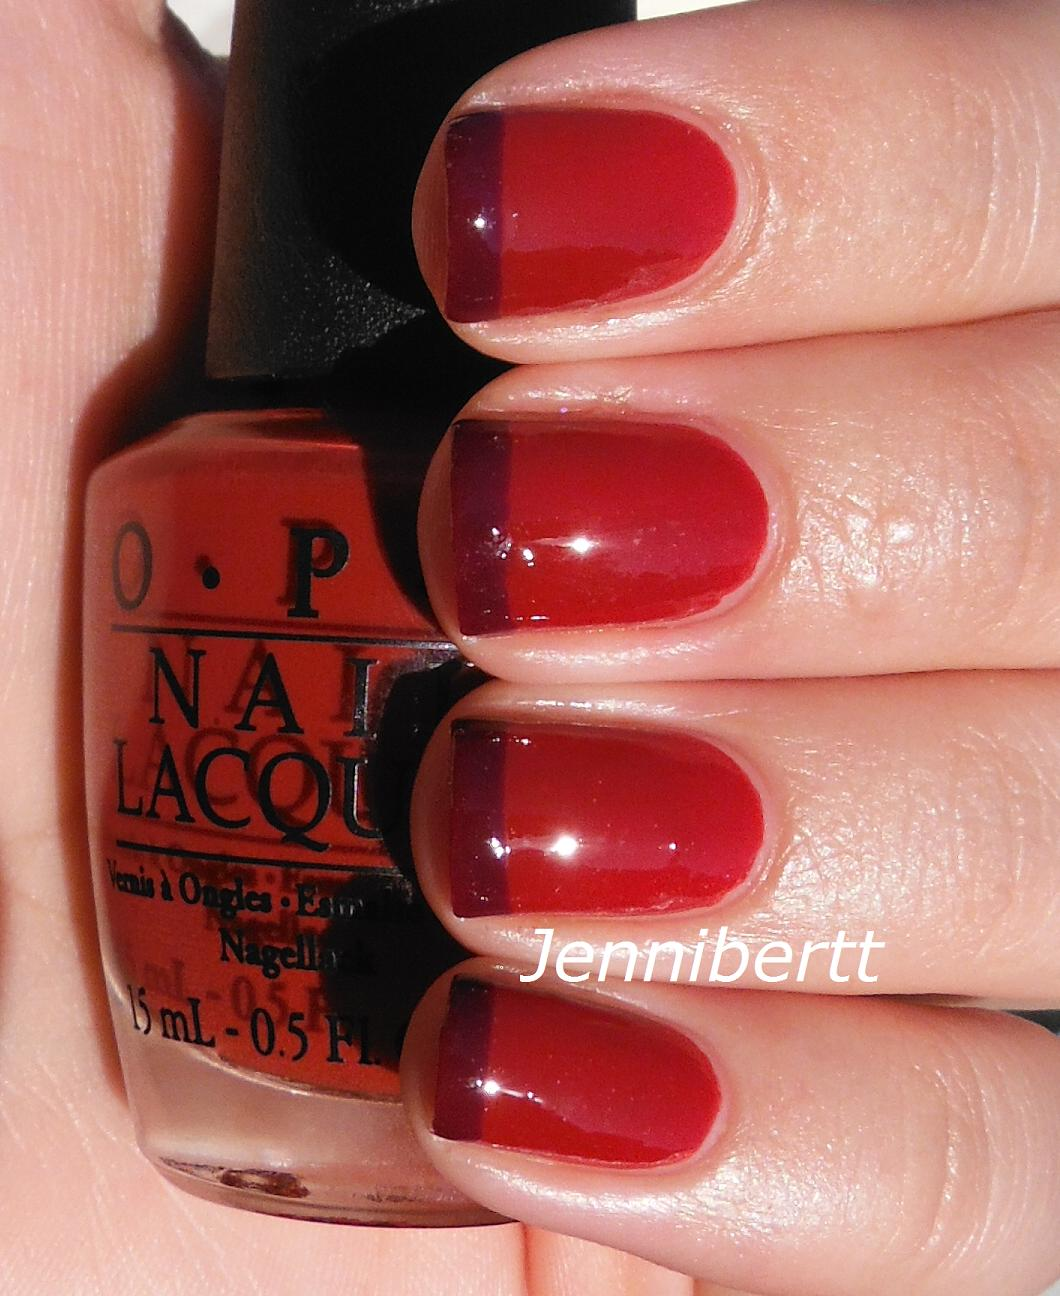 Jennibertt\'s Nails: OPI San Francisco Collection Nail Art